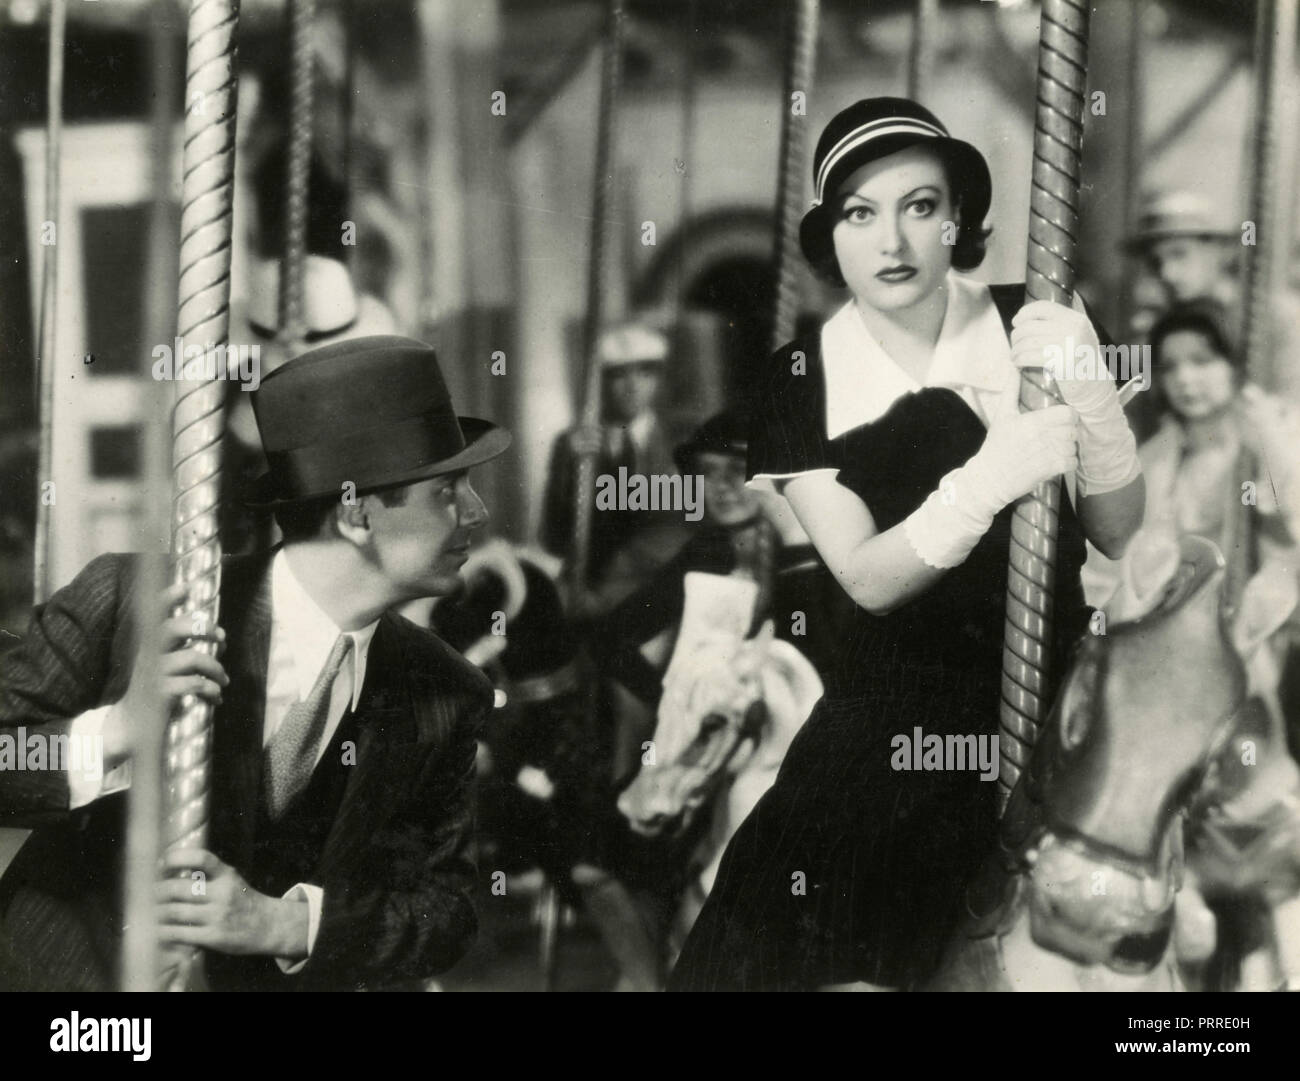 Actors Joan Crawford and Franchot Tone in the movie Dancing Lady, USA 1933 - Stock Image